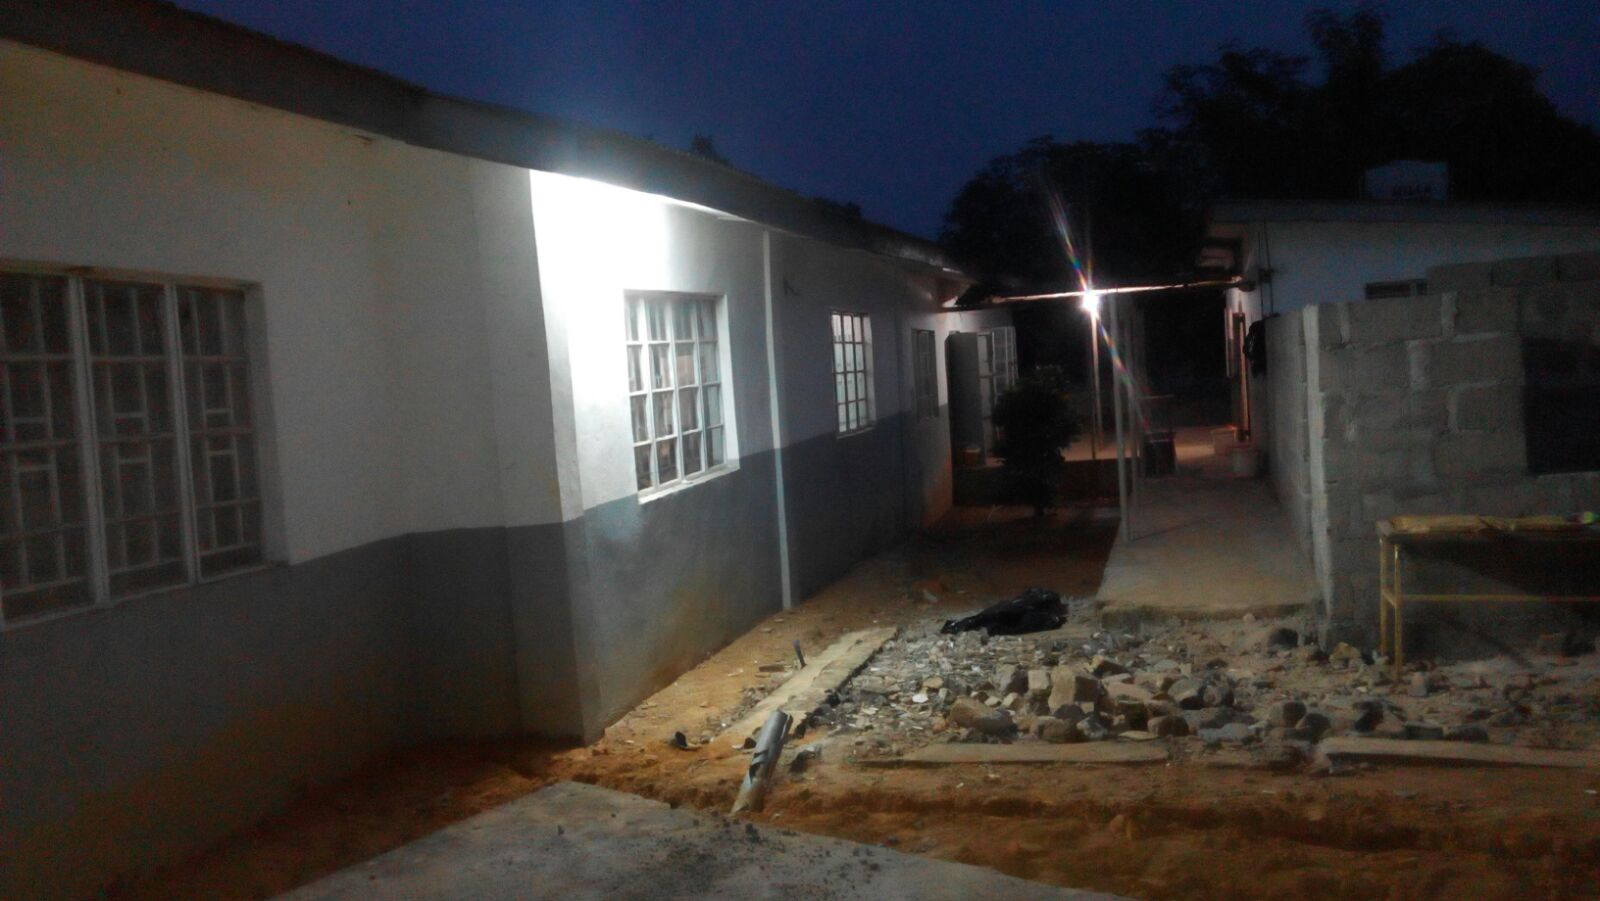 External lighting to the Health Centre